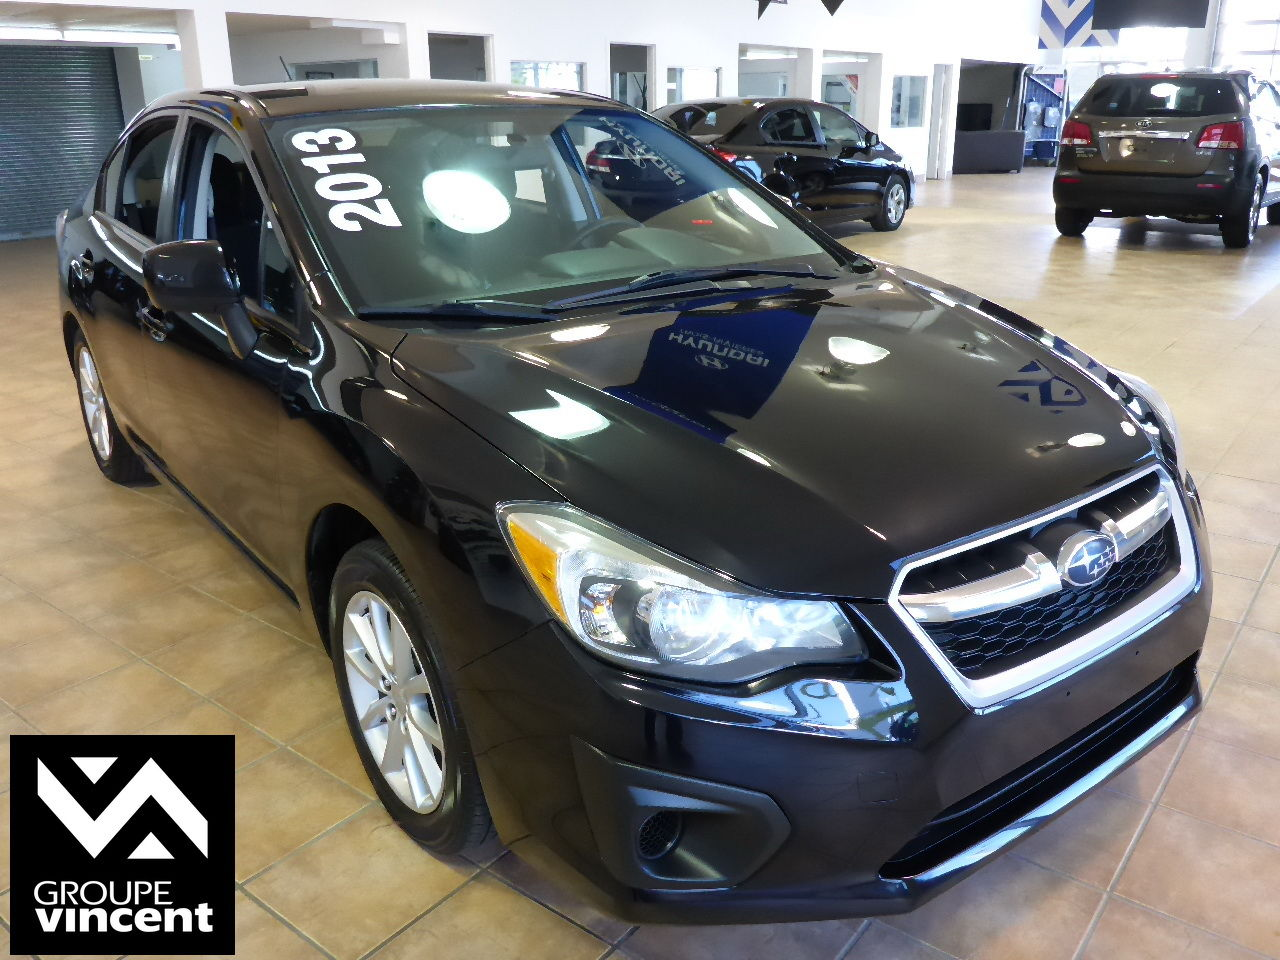 subaru impreza touring awd 2013 d 39 occasion shawinigan groupe vincent 33274av. Black Bedroom Furniture Sets. Home Design Ideas